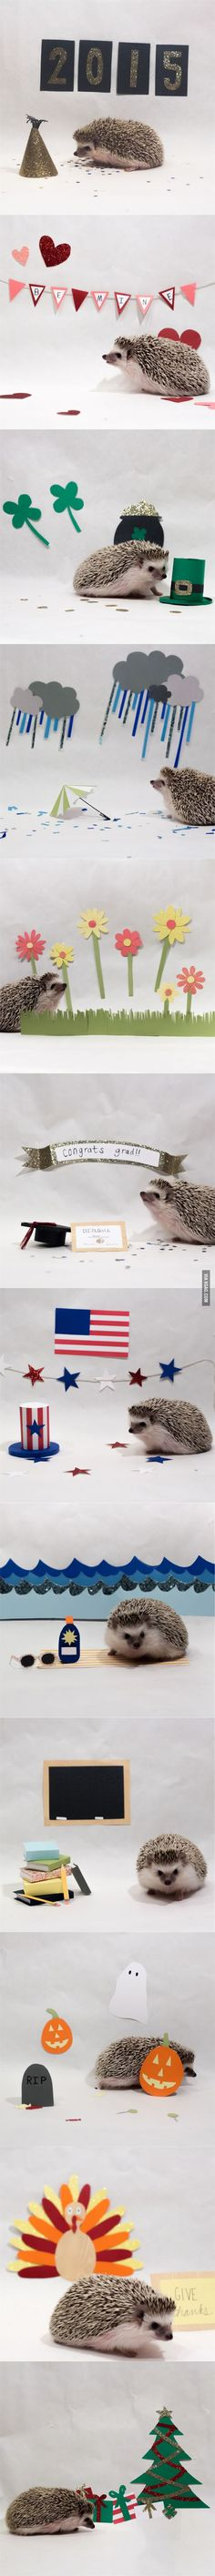 I took care of my roommate's hedgehog over Christmas break and decided to make a 2015 calendar for her.